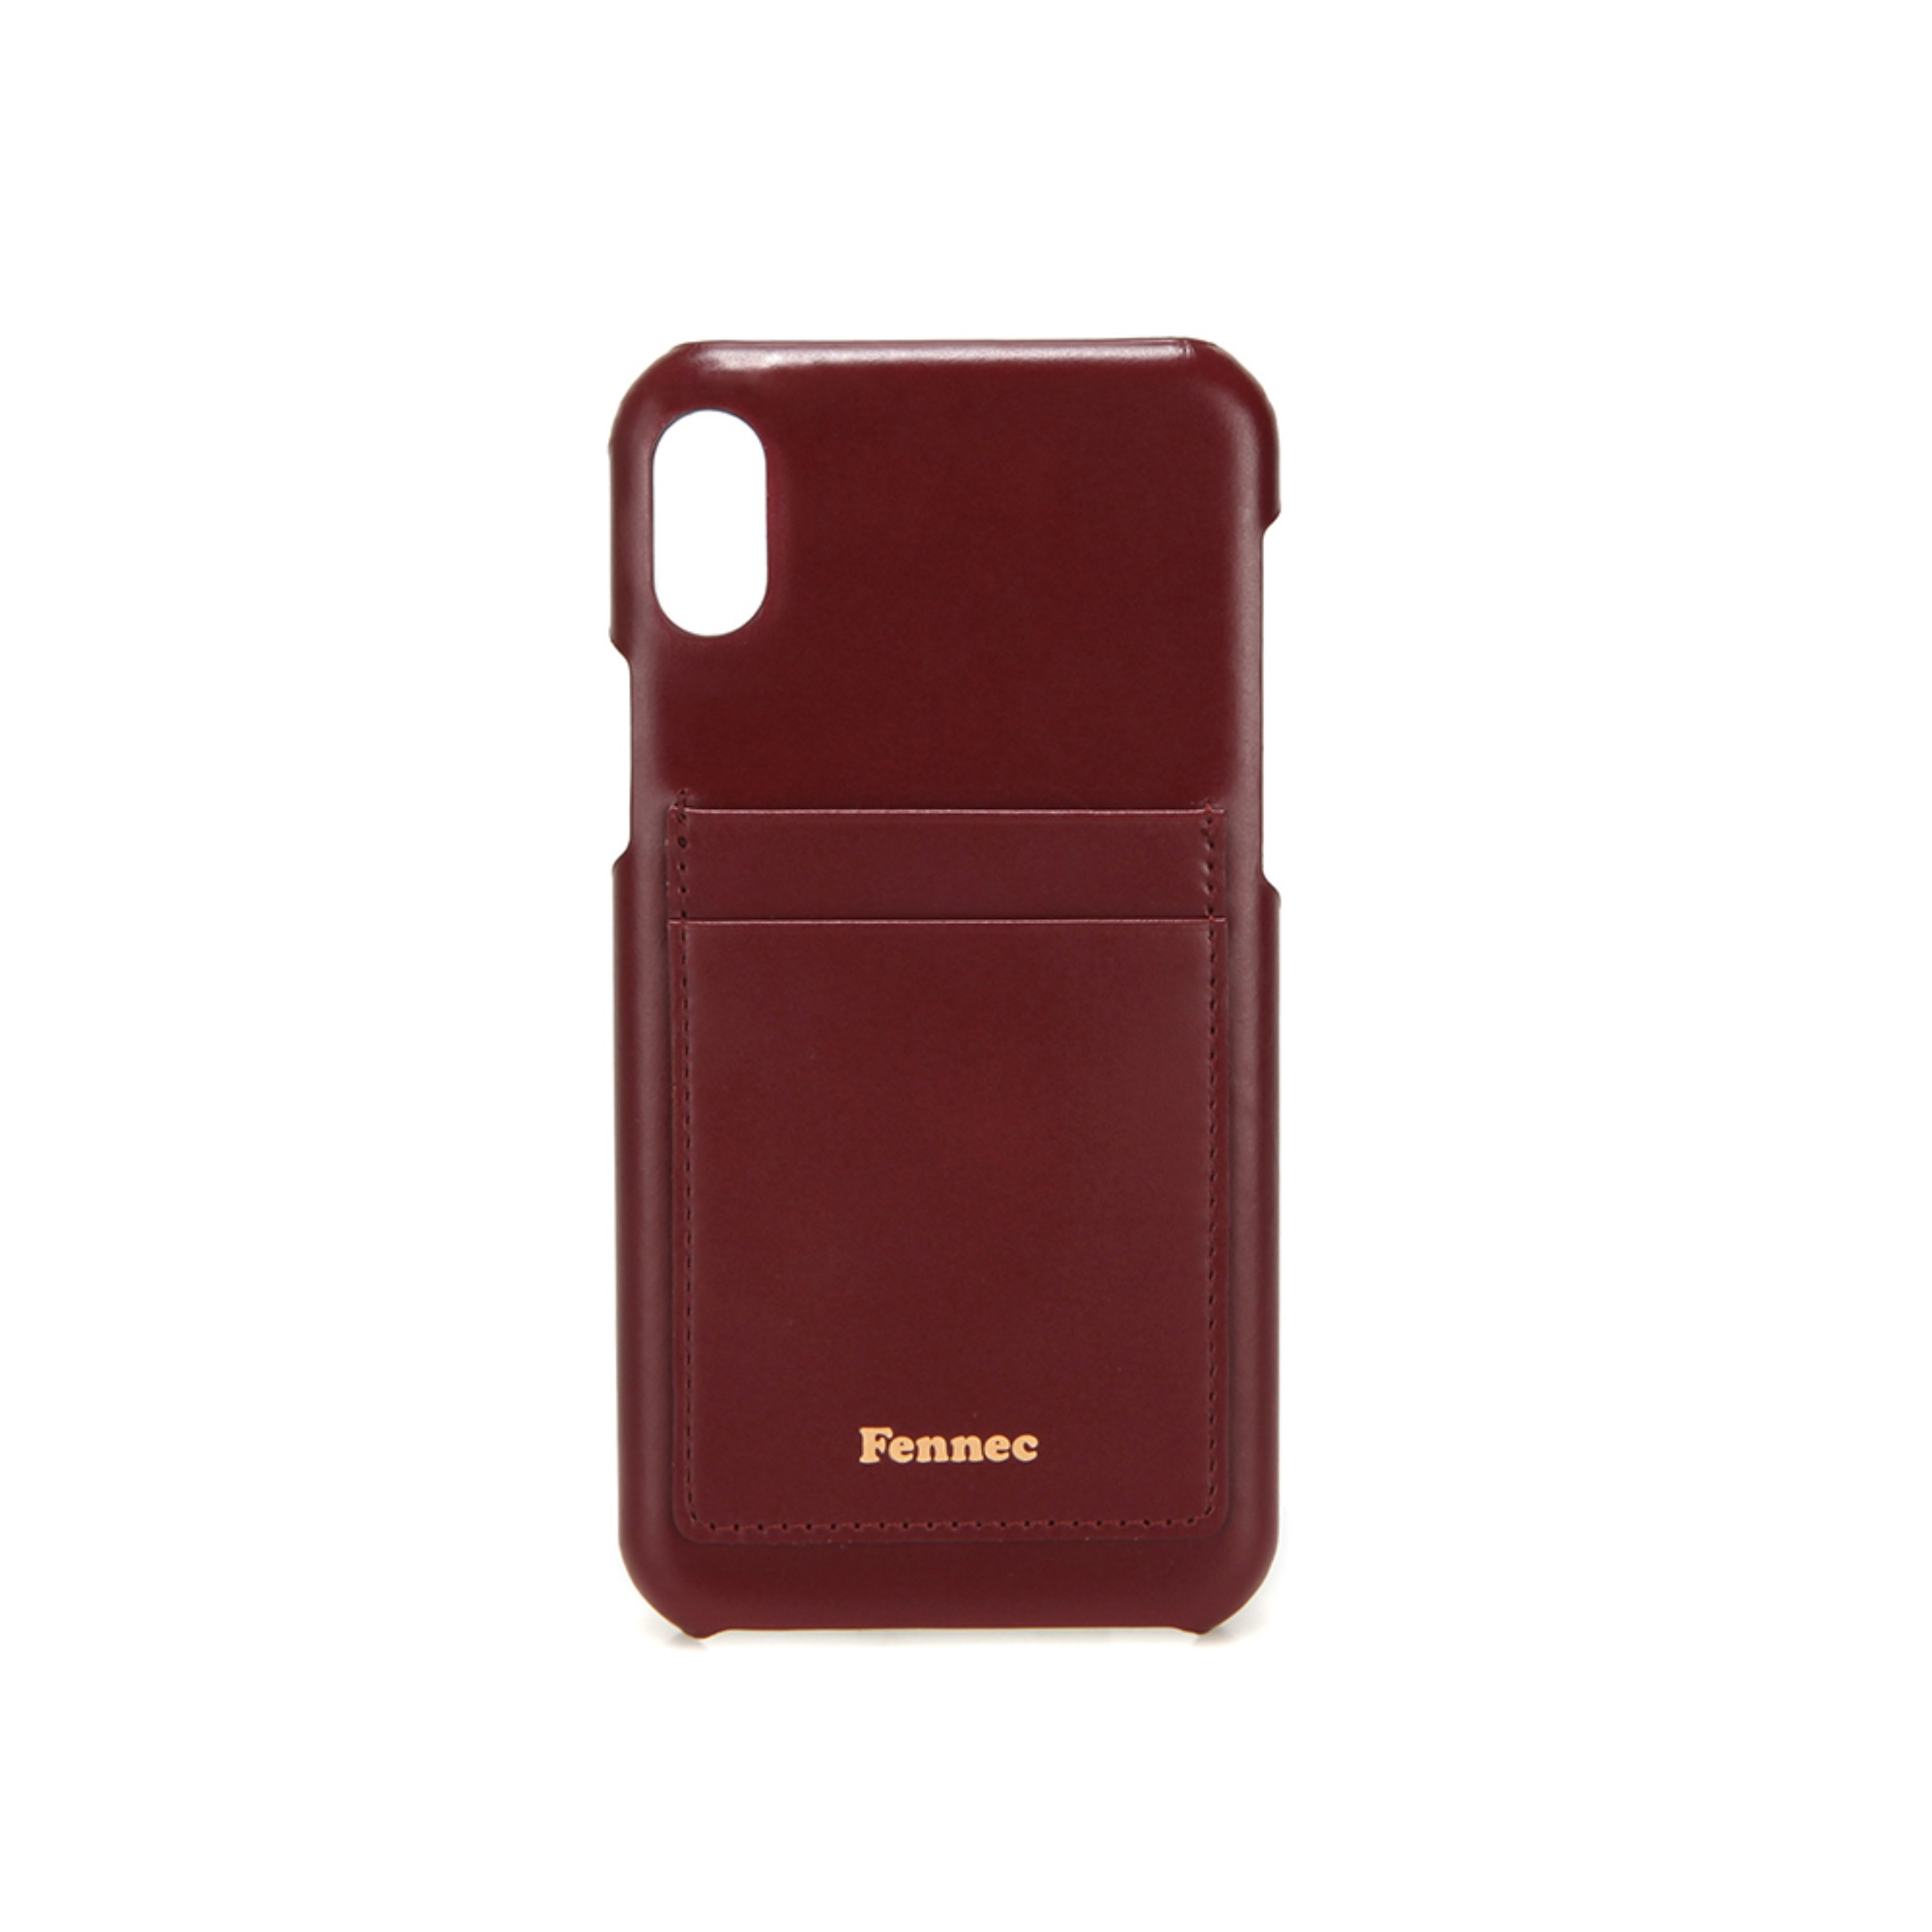 [DISCONTINUE] LEATHER iPHONE XR CARD CASE - WINE